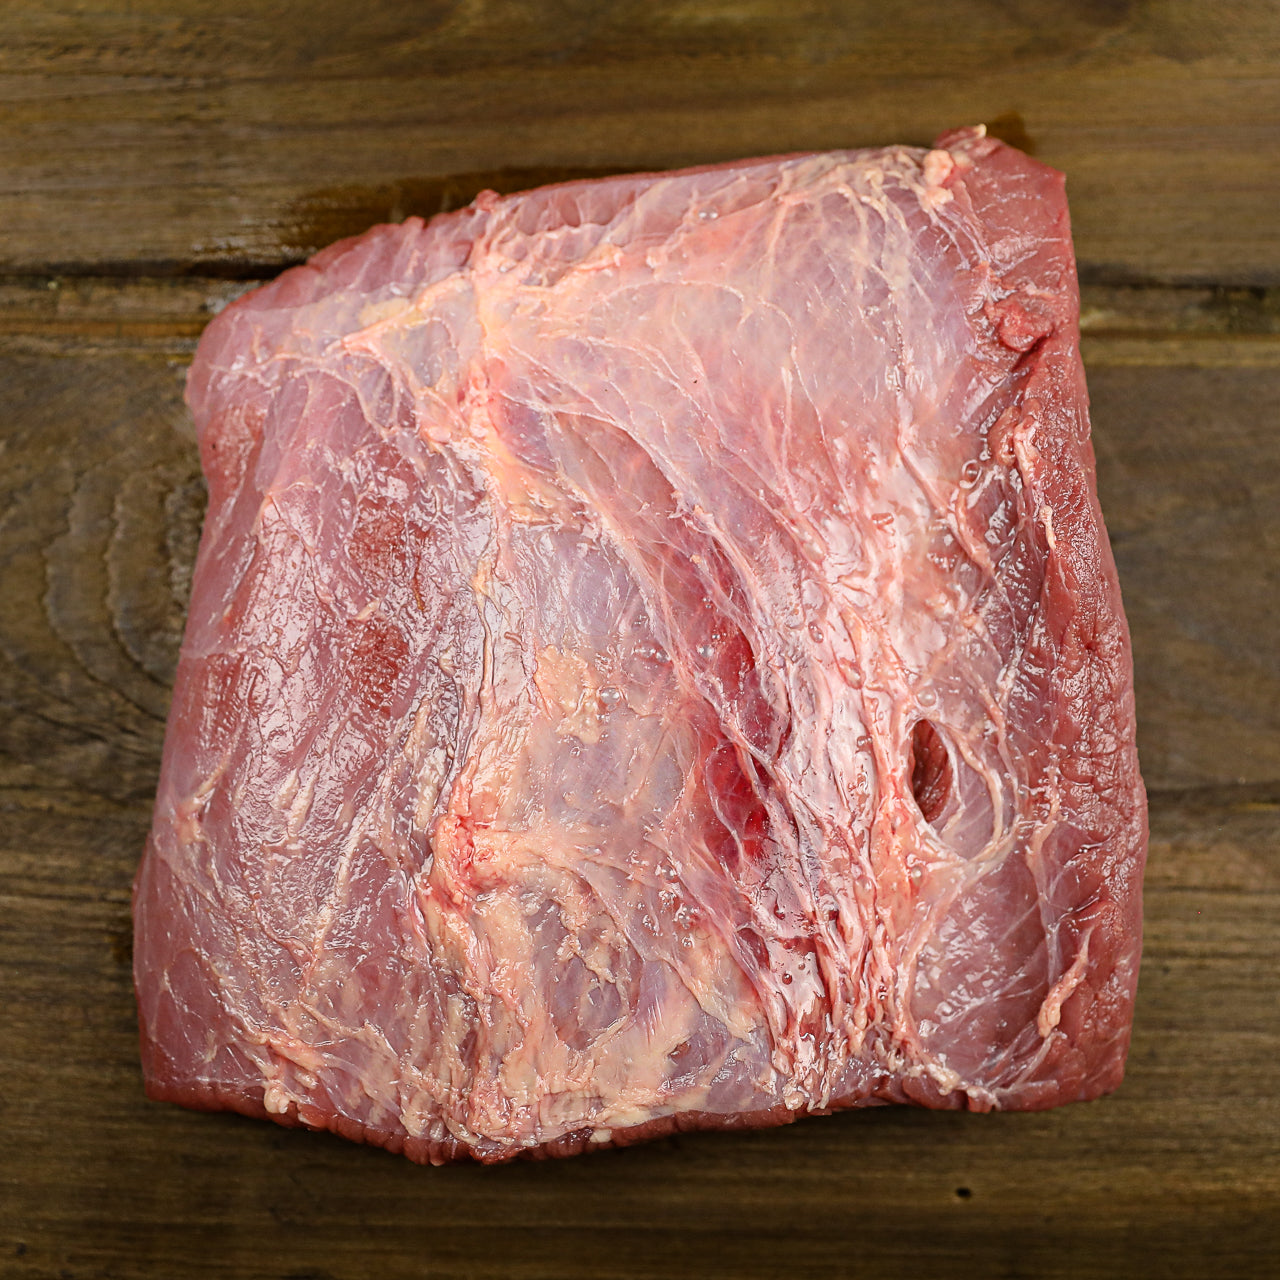 Grass-Fed Grass-Fed Pasture-Finished Brisket